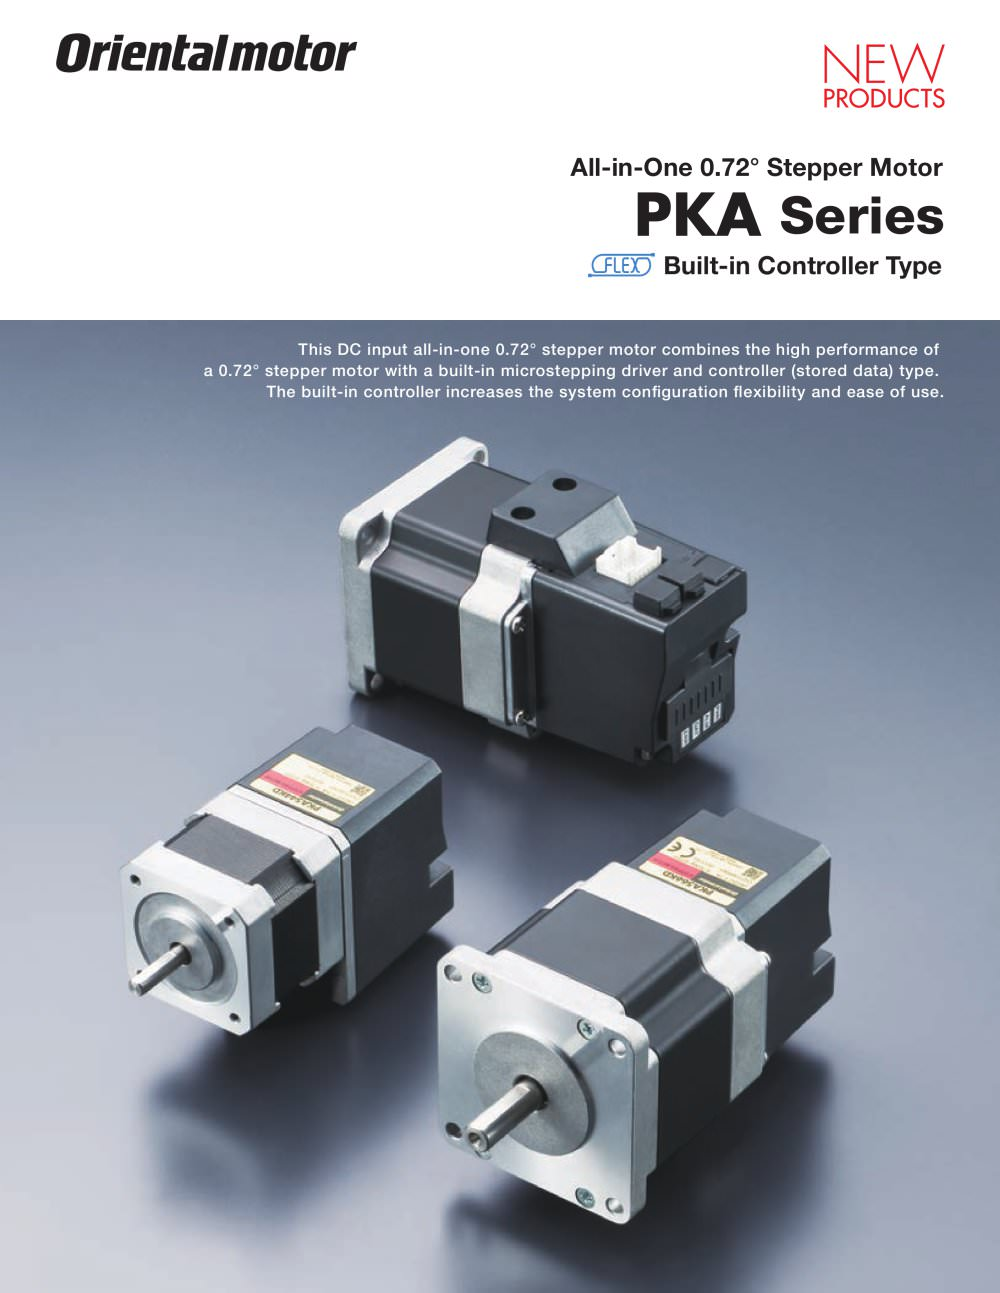 0.72° All-in-One Stepper Motor, PKA Series* - 1 / 12 Pages